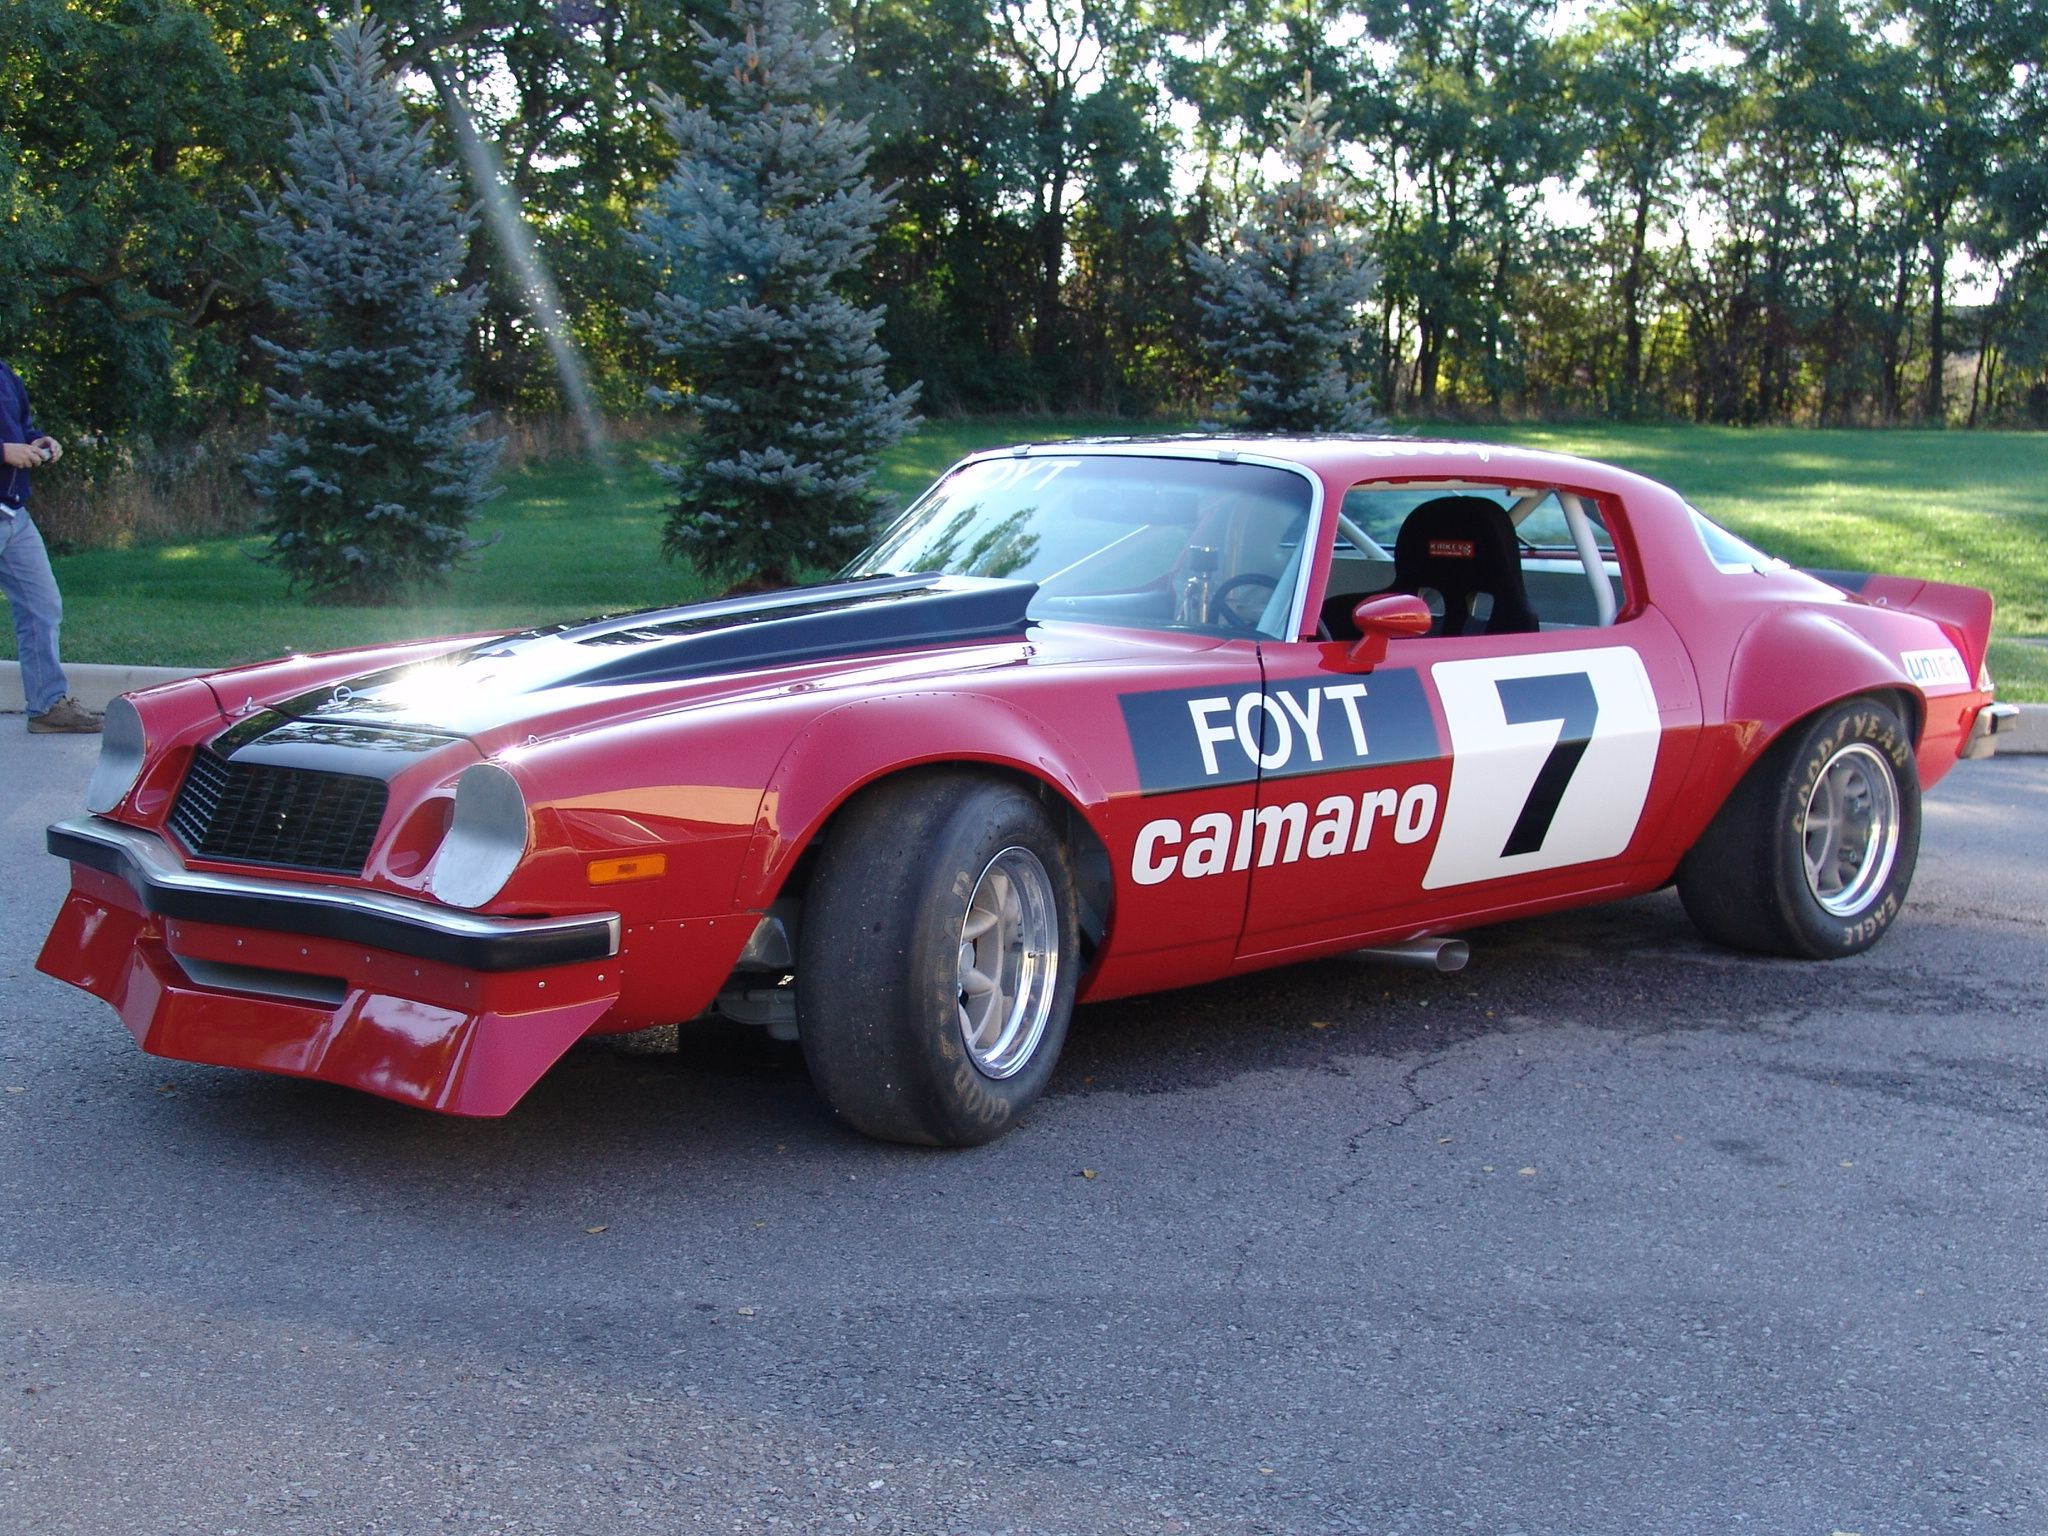 Legendary motorcar presents this restored 1975 chevrolet camaro iroc race car available for purchase